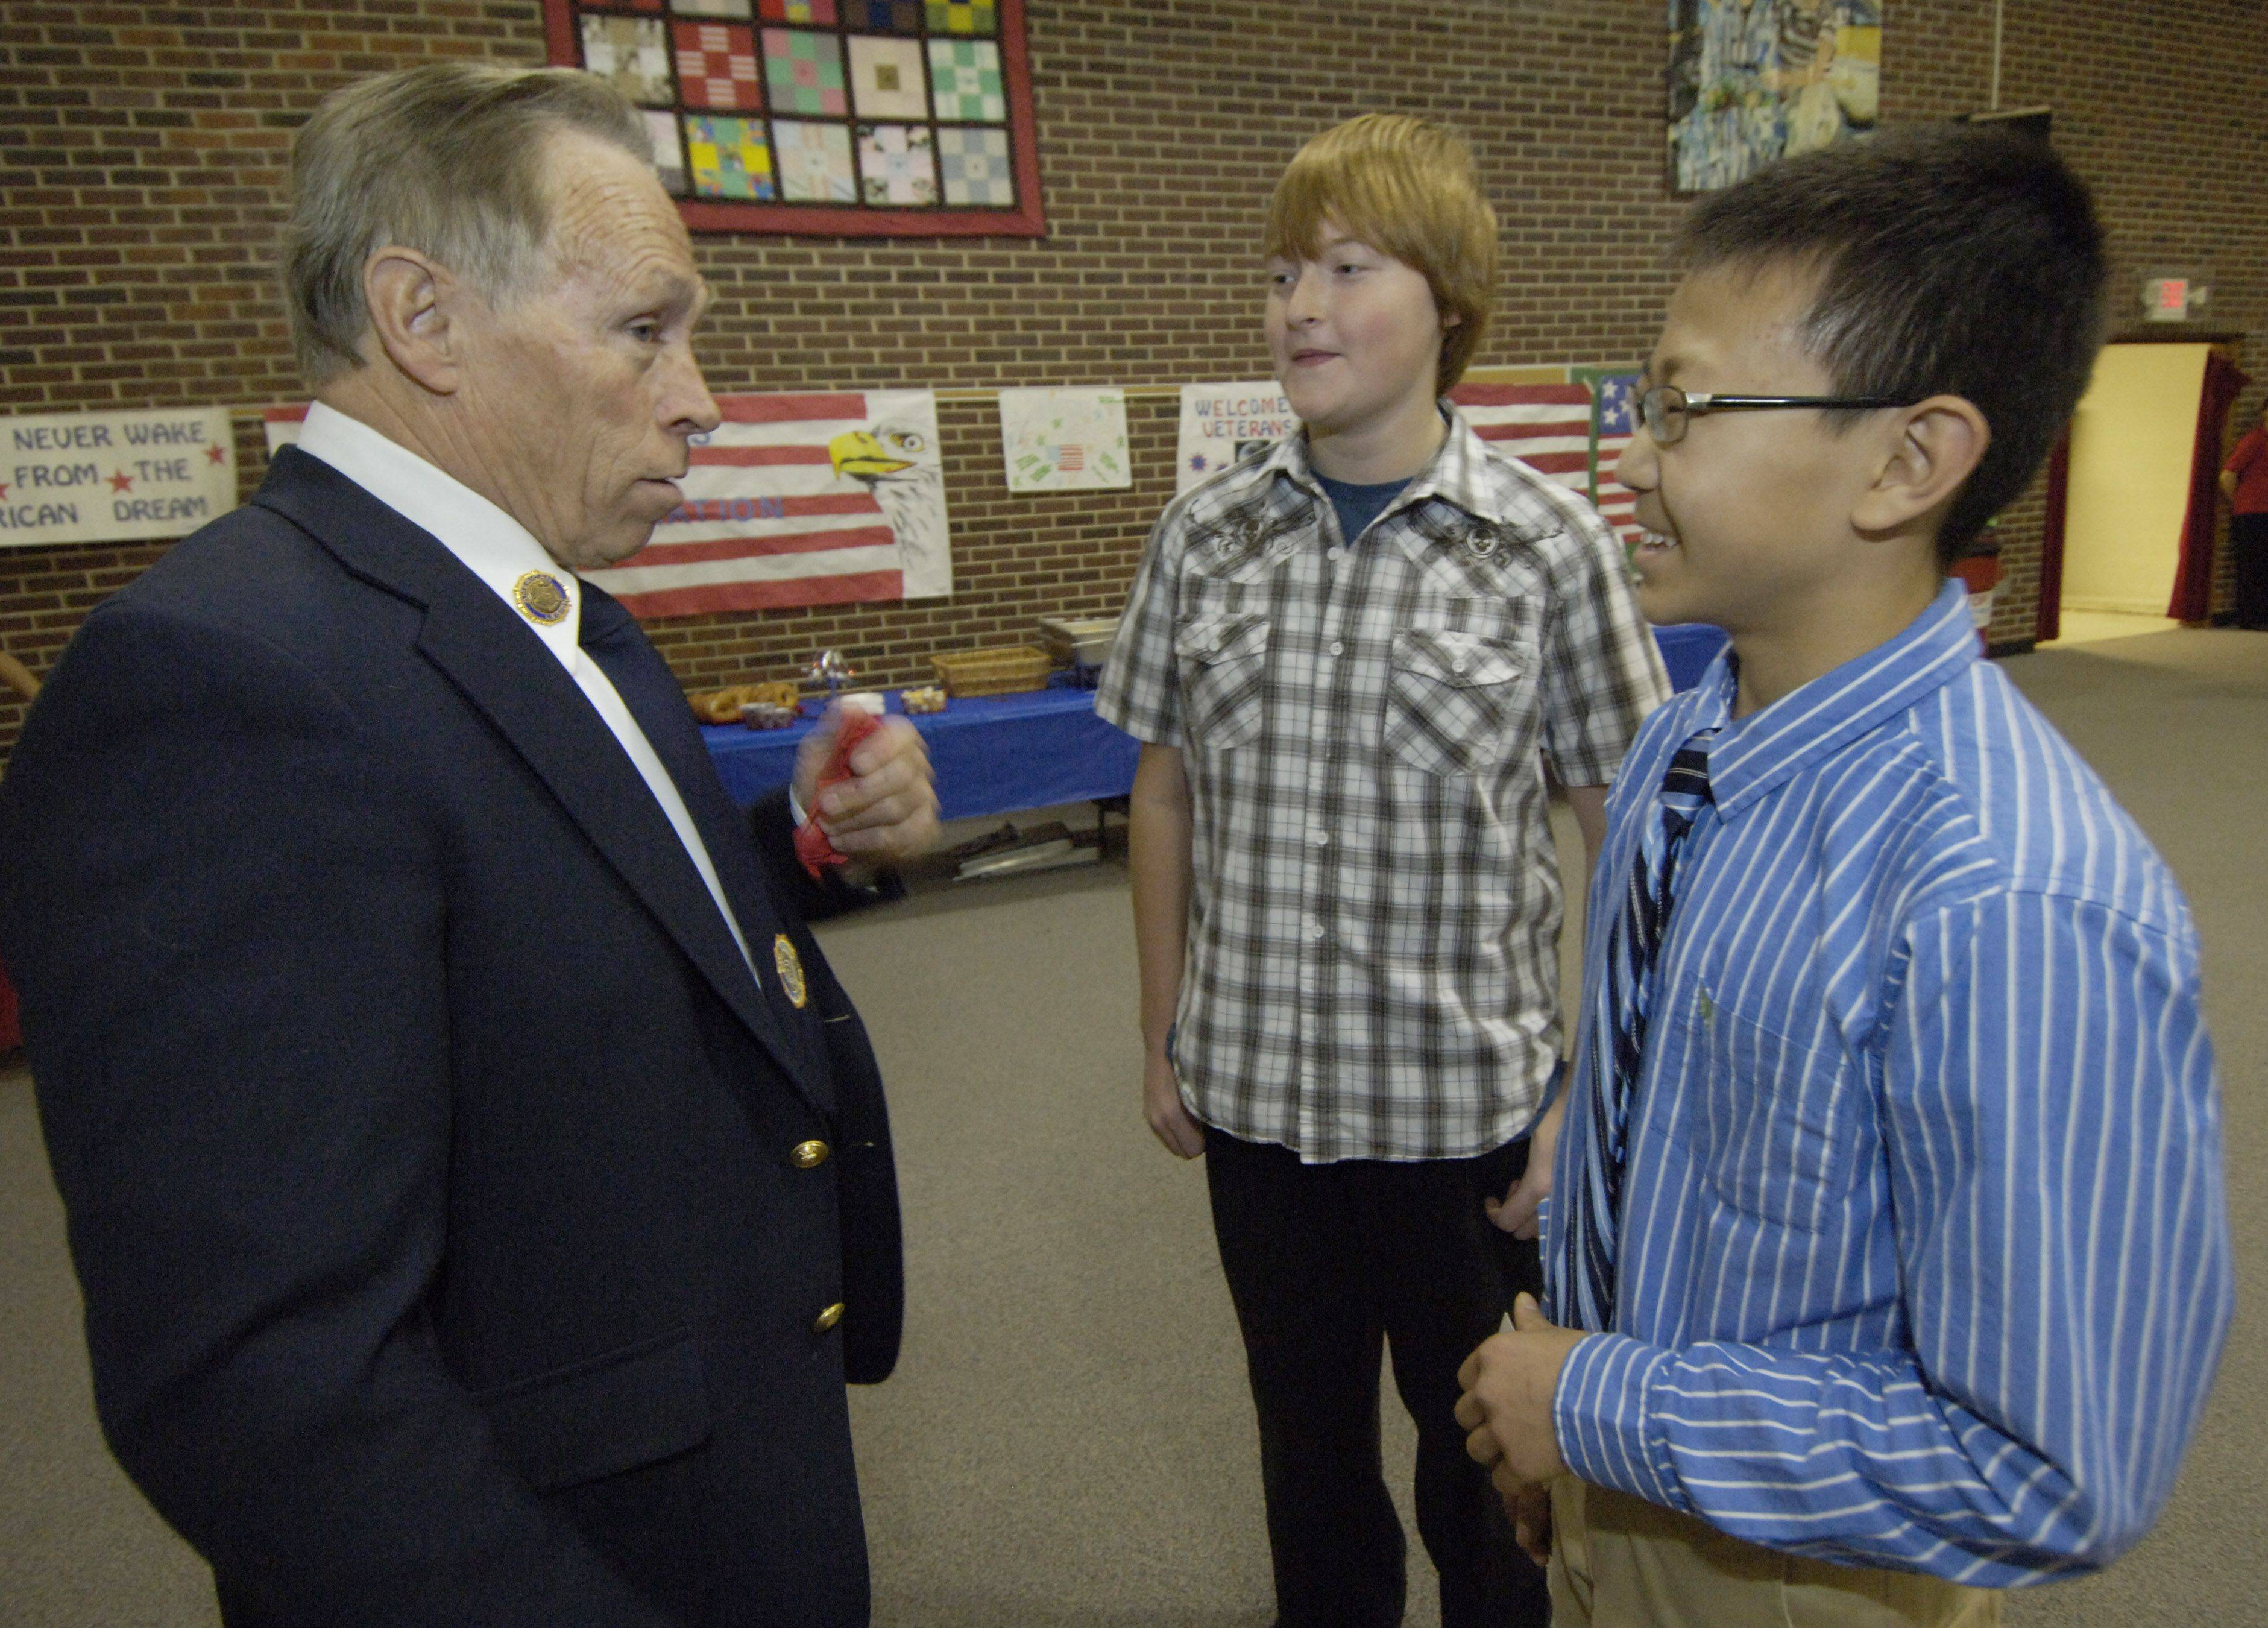 Dennis Kersting of Des Plaines, who served the Navy during the Vietnam War, talks with eighth graders Tyler Anderson, center, and Paul Kim during a breakfast for Veterans at MacArthur Middle School, Prospect Heights, Thursday.